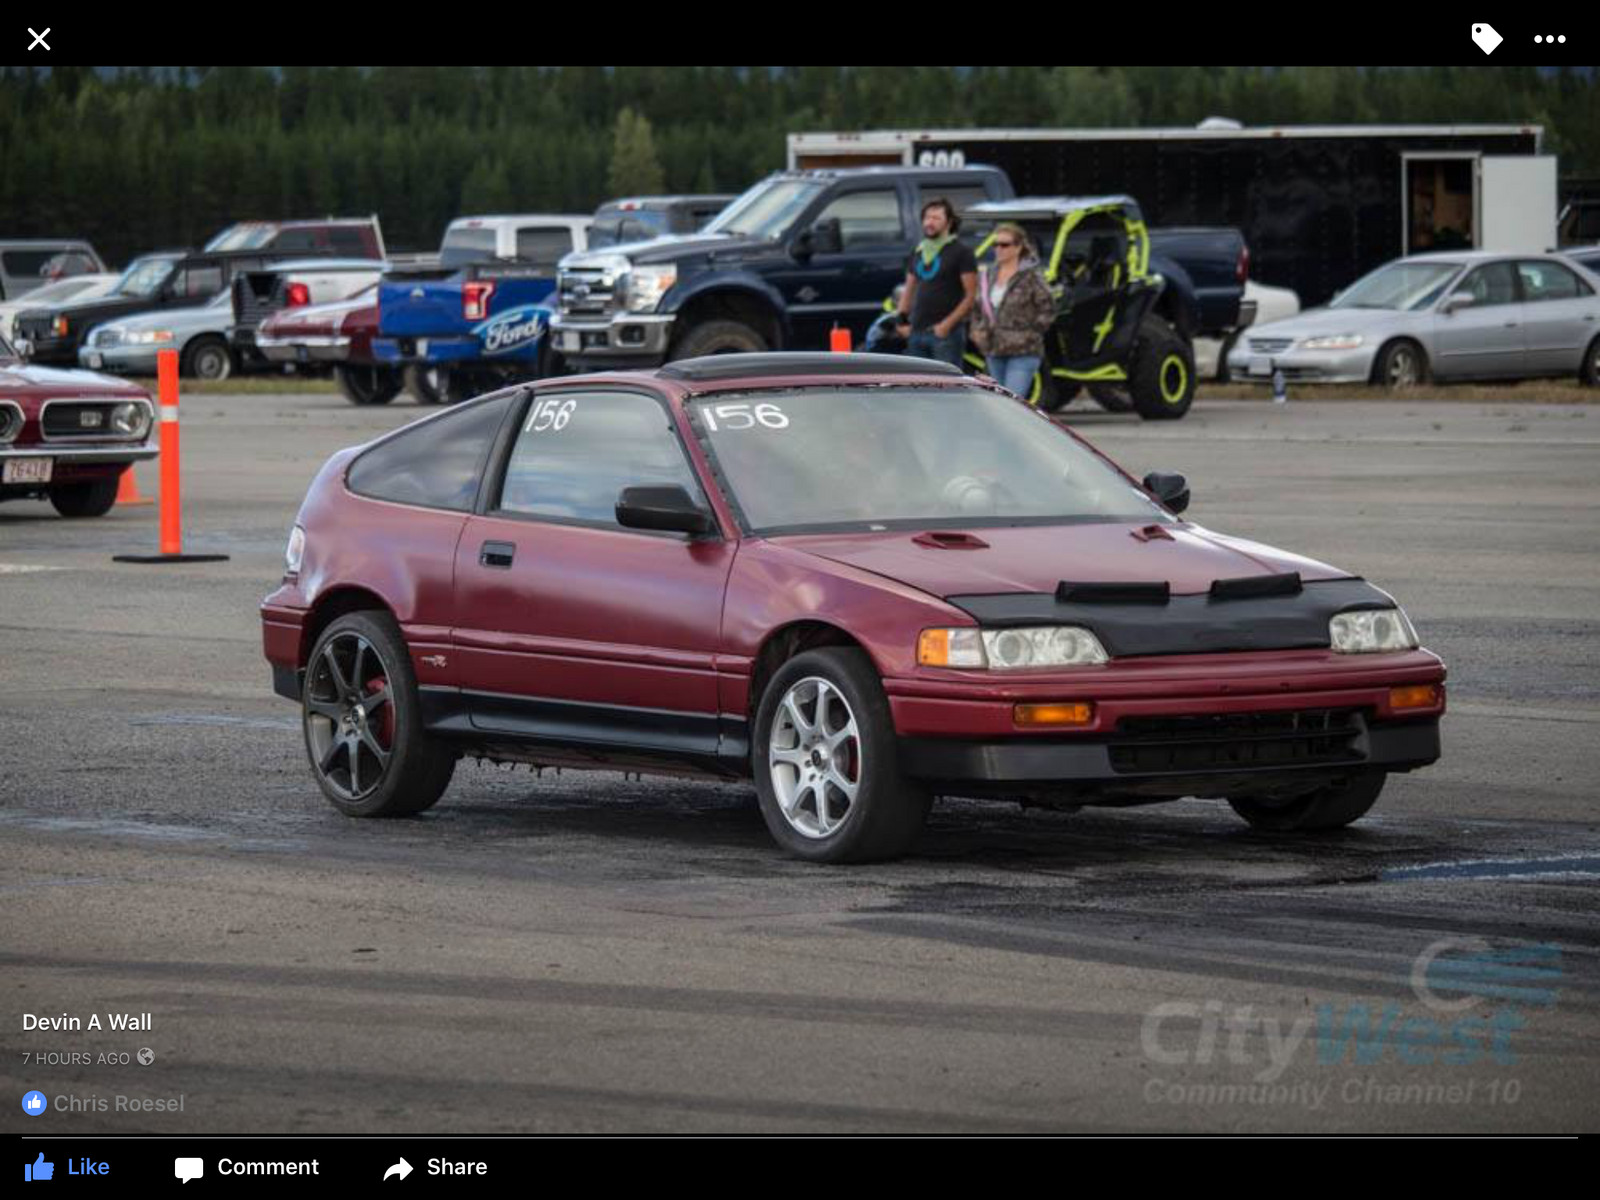 inferno red met 1989 Honda Civic CRX si